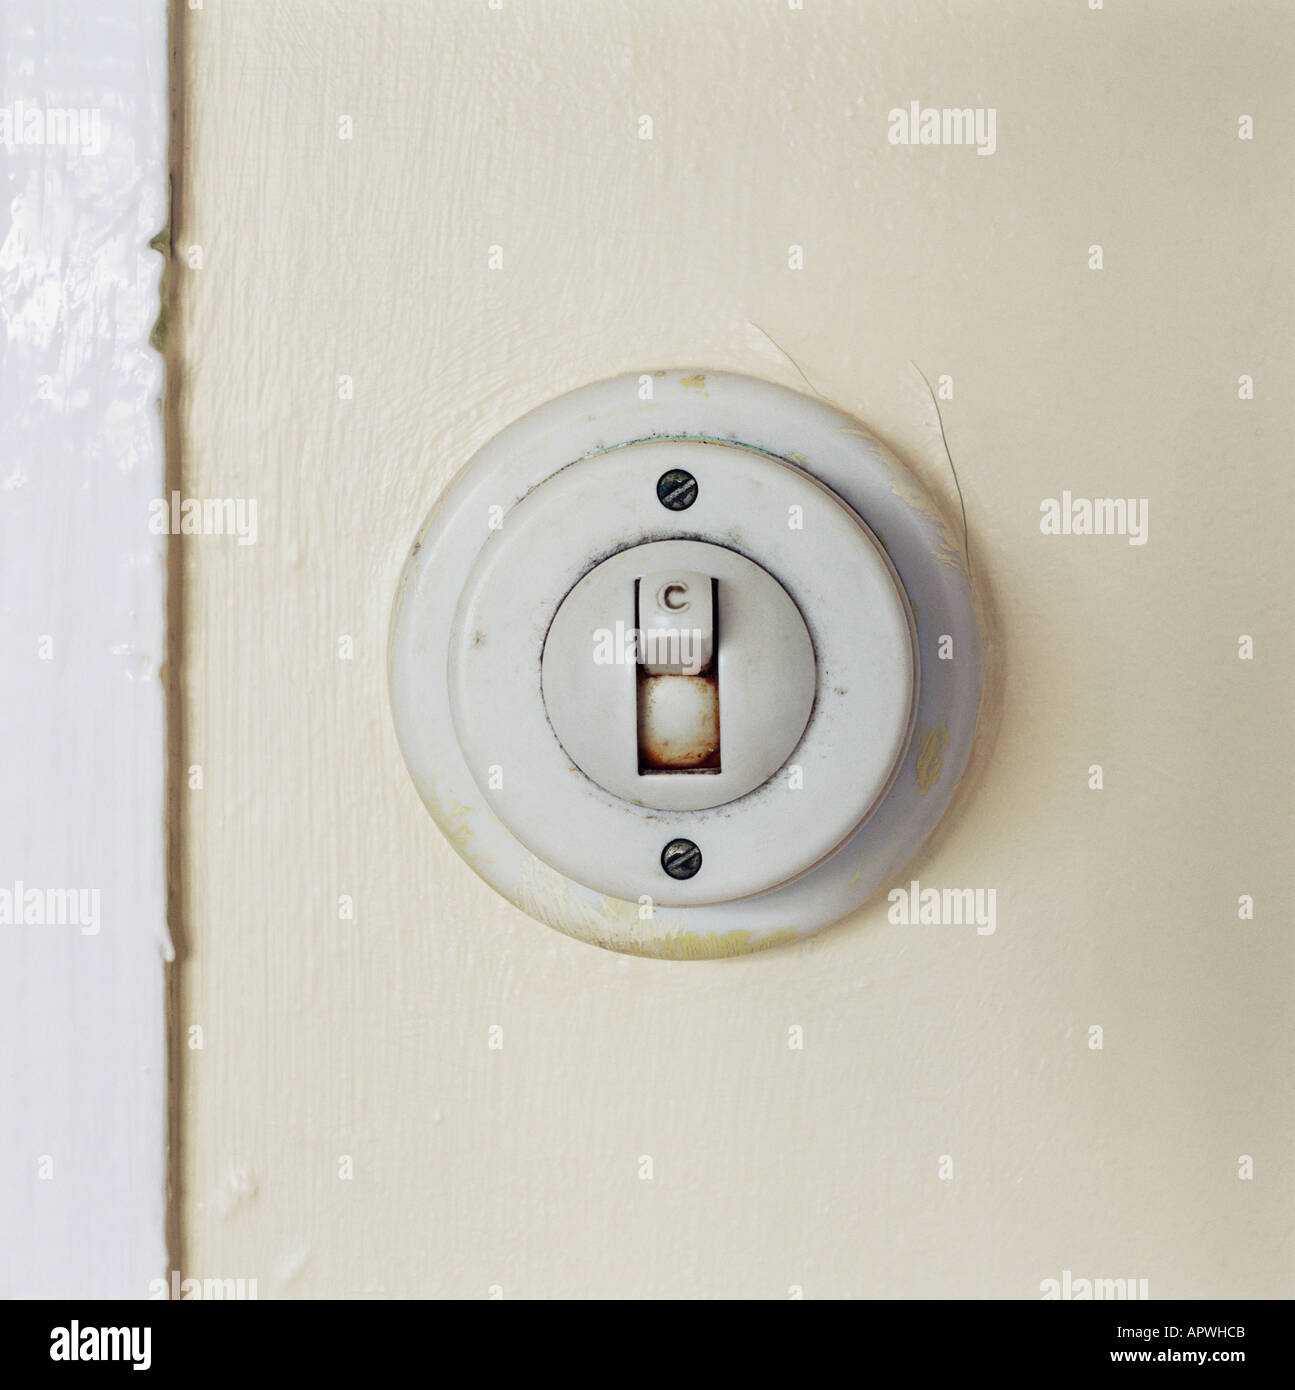 Home Light Switch Stock Photos & Home Light Switch Stock Images - Alamy